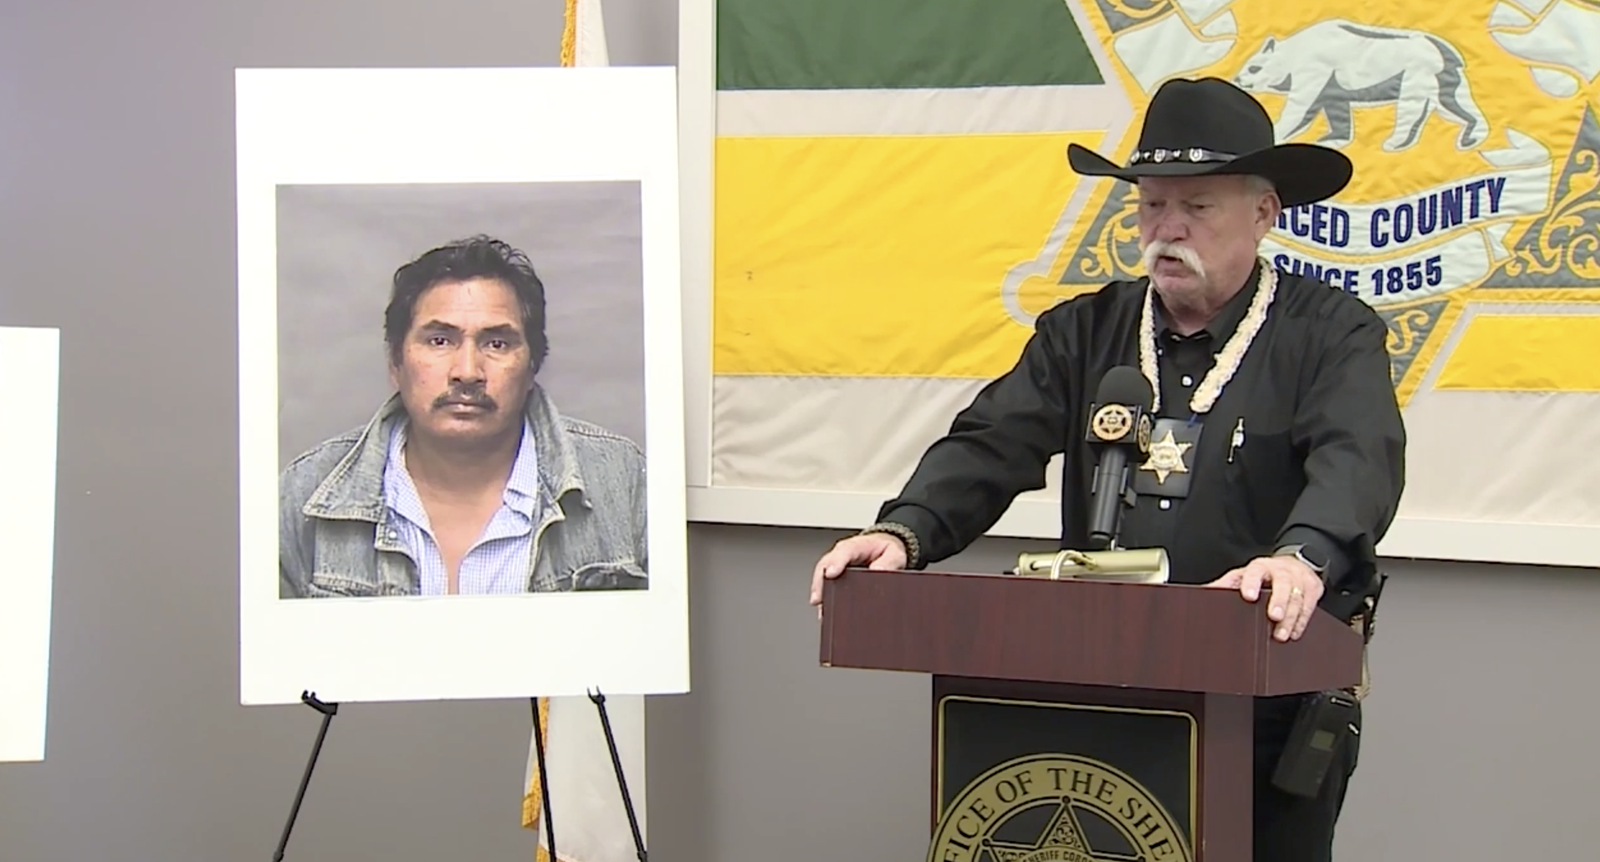 Merced County Sheriff Van Warnke speaks at a news conference regarding{ }Guadalupe Lopez-Herrera, who is an undocumented immigrant with a history of domestic violence. Authorities say he shot and injured a sheriff's deputy trying to arrest him. (Sinclair Broadcast Group)